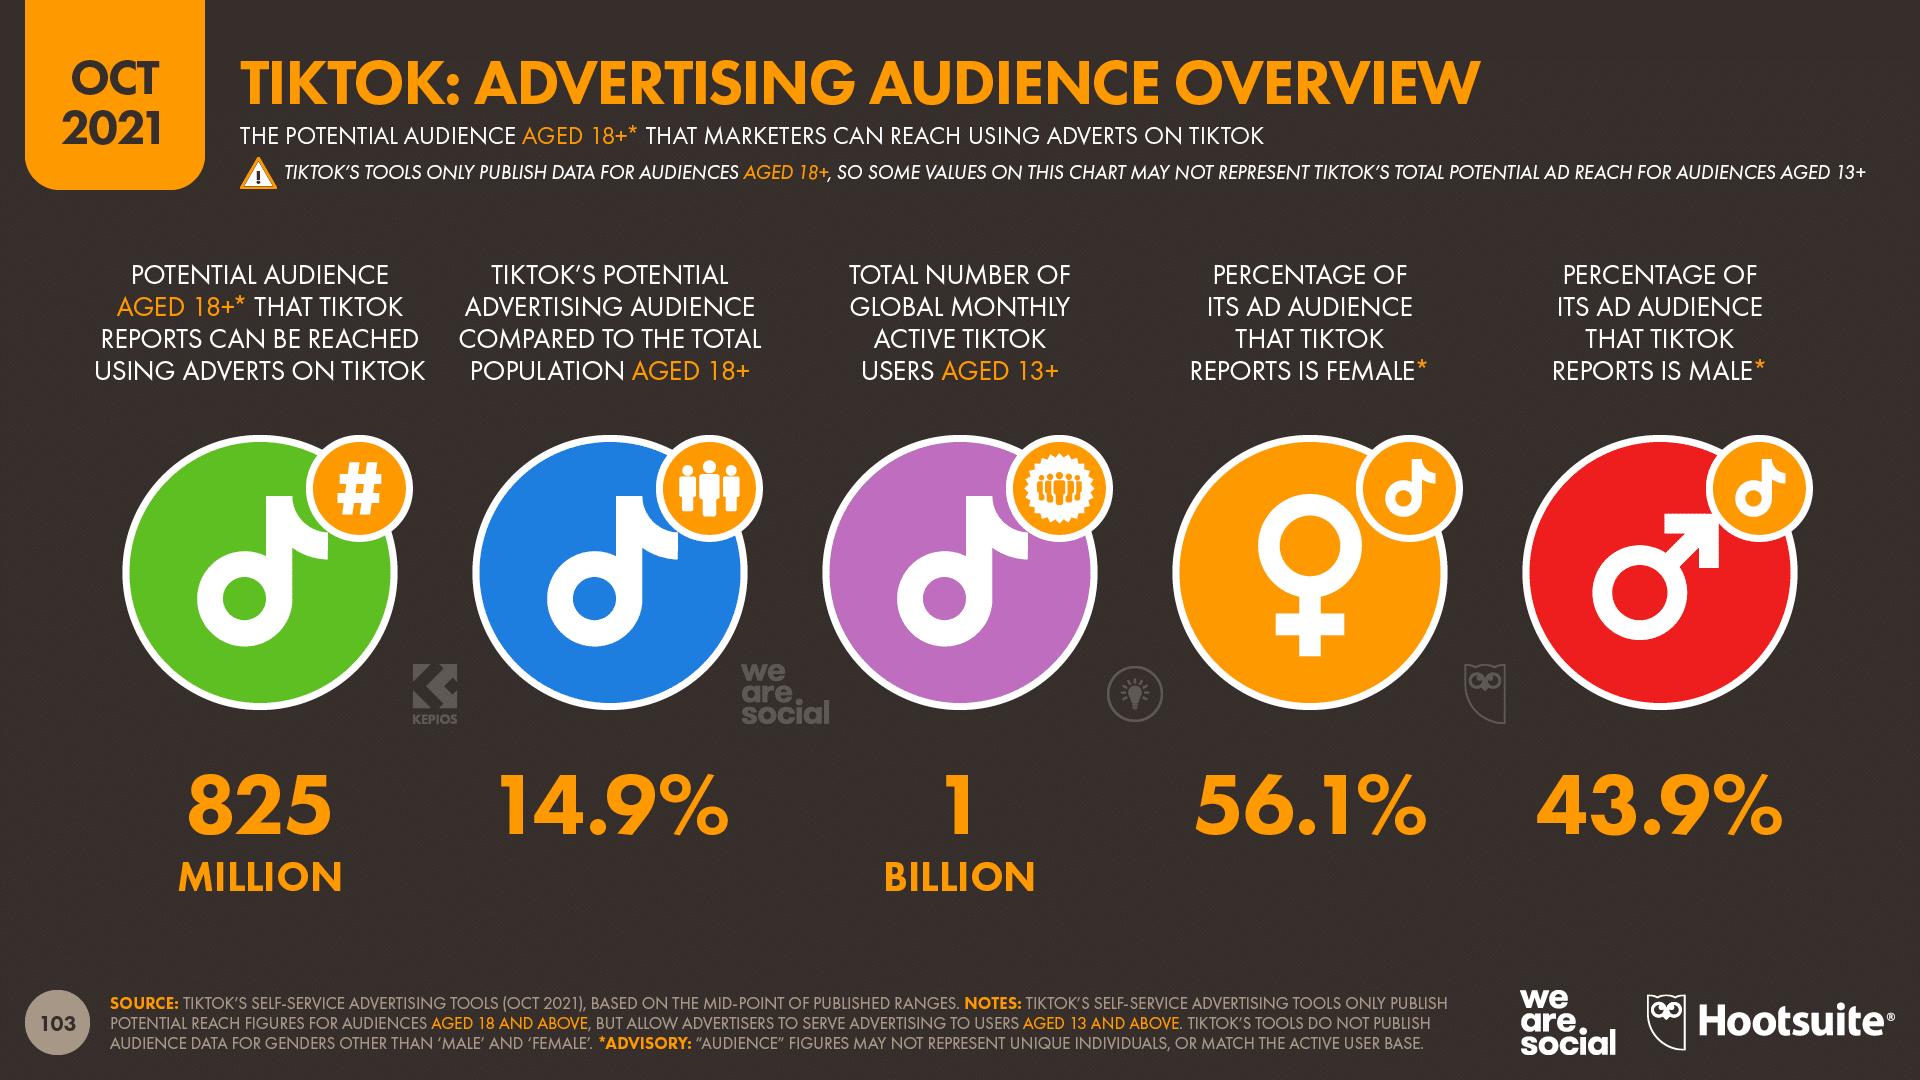 chart showing TikTok Advertising Audience Overview